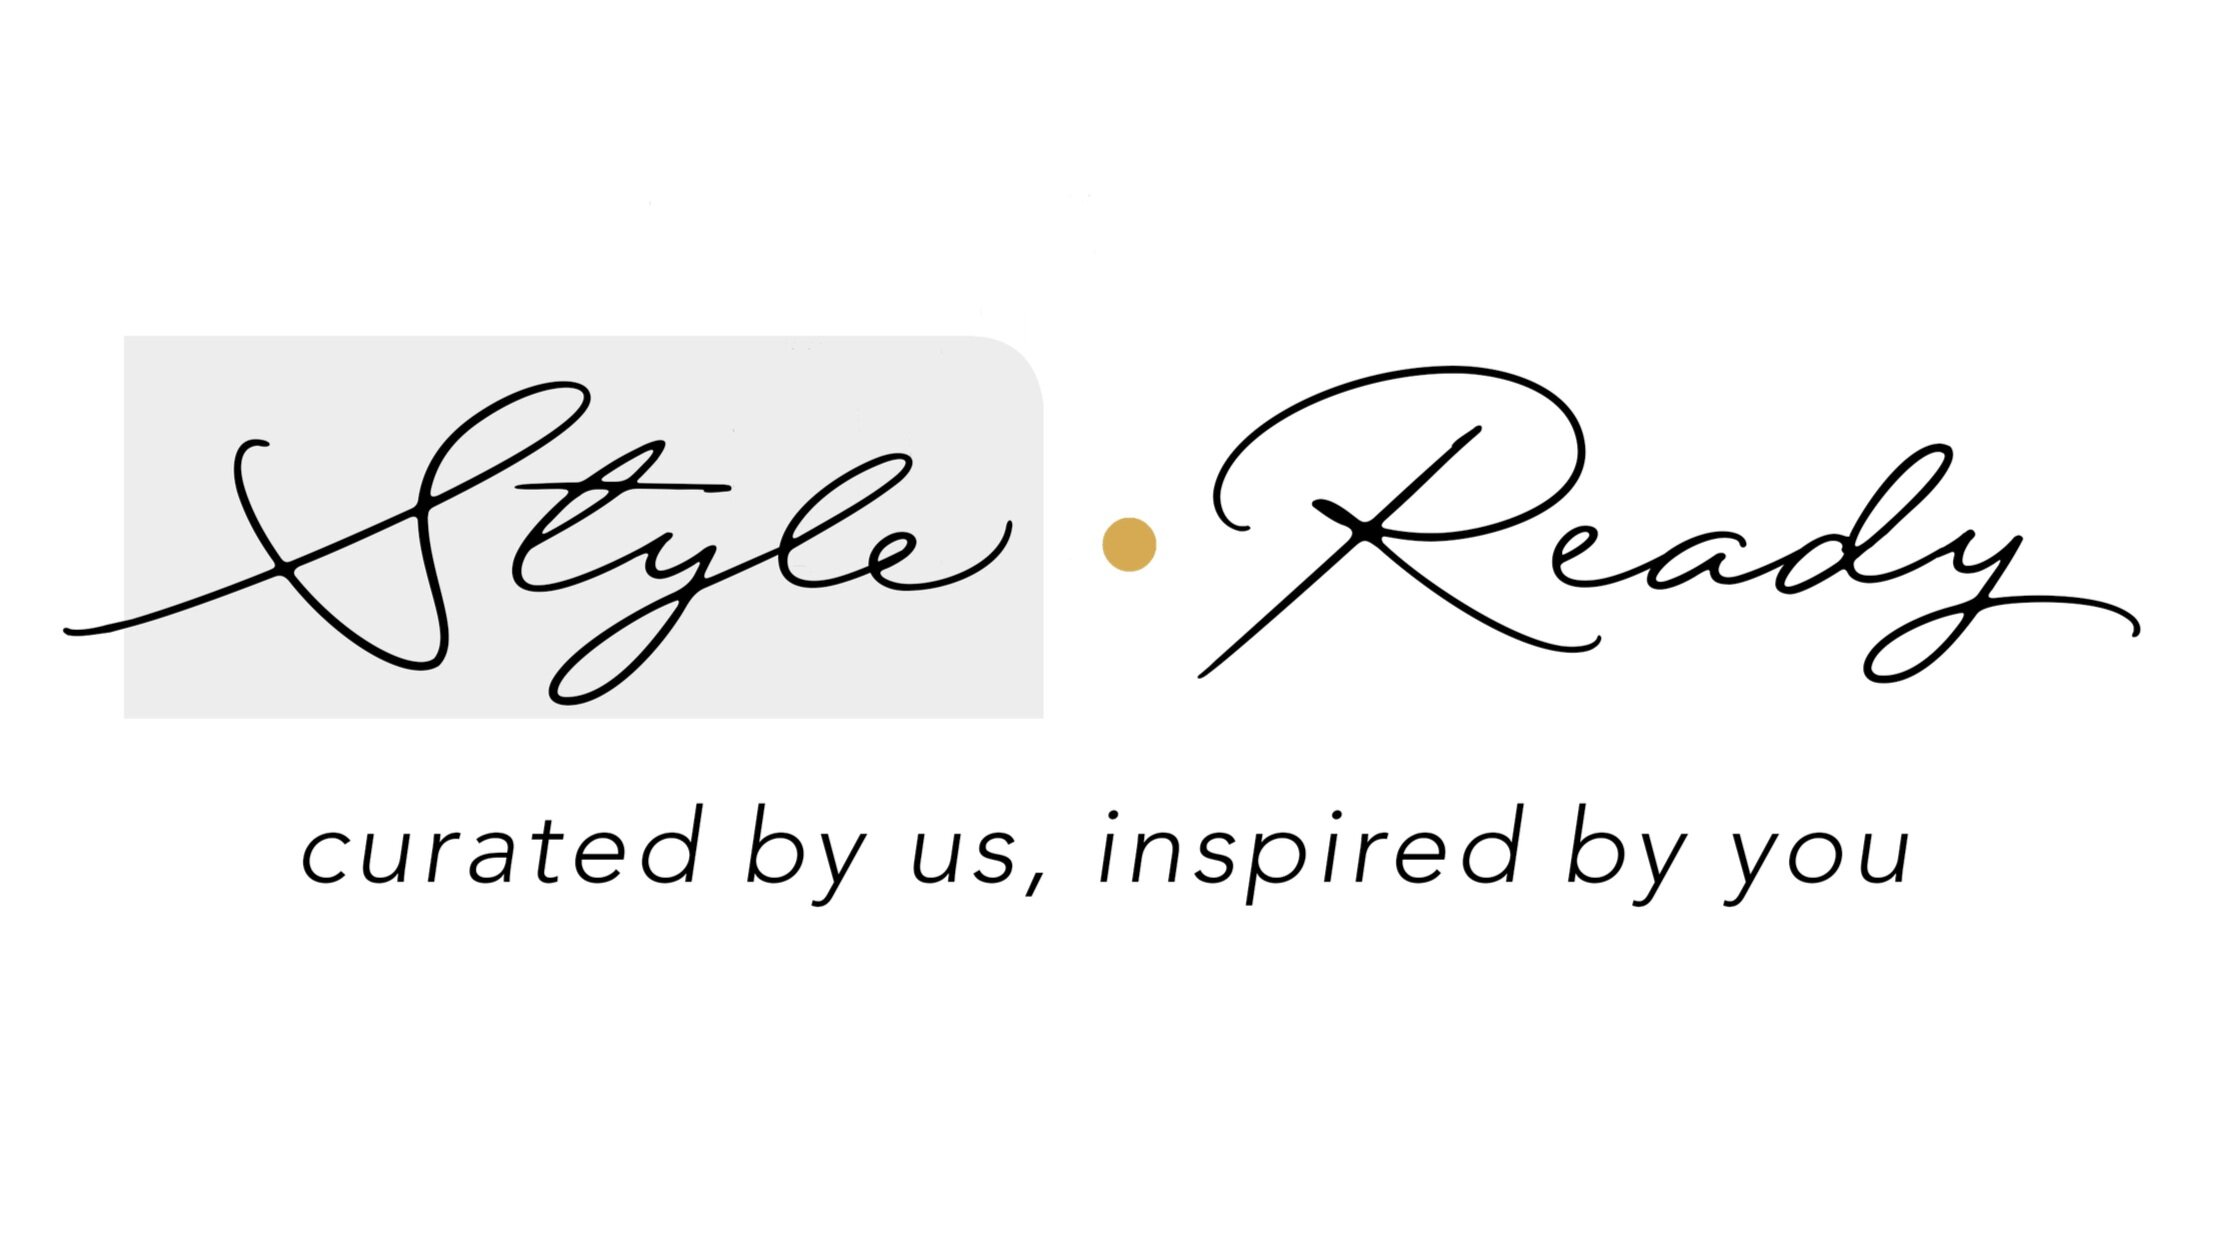 bfearless_style-ready_logo-curated-by-us_inspired-by-you-tagline.jpg